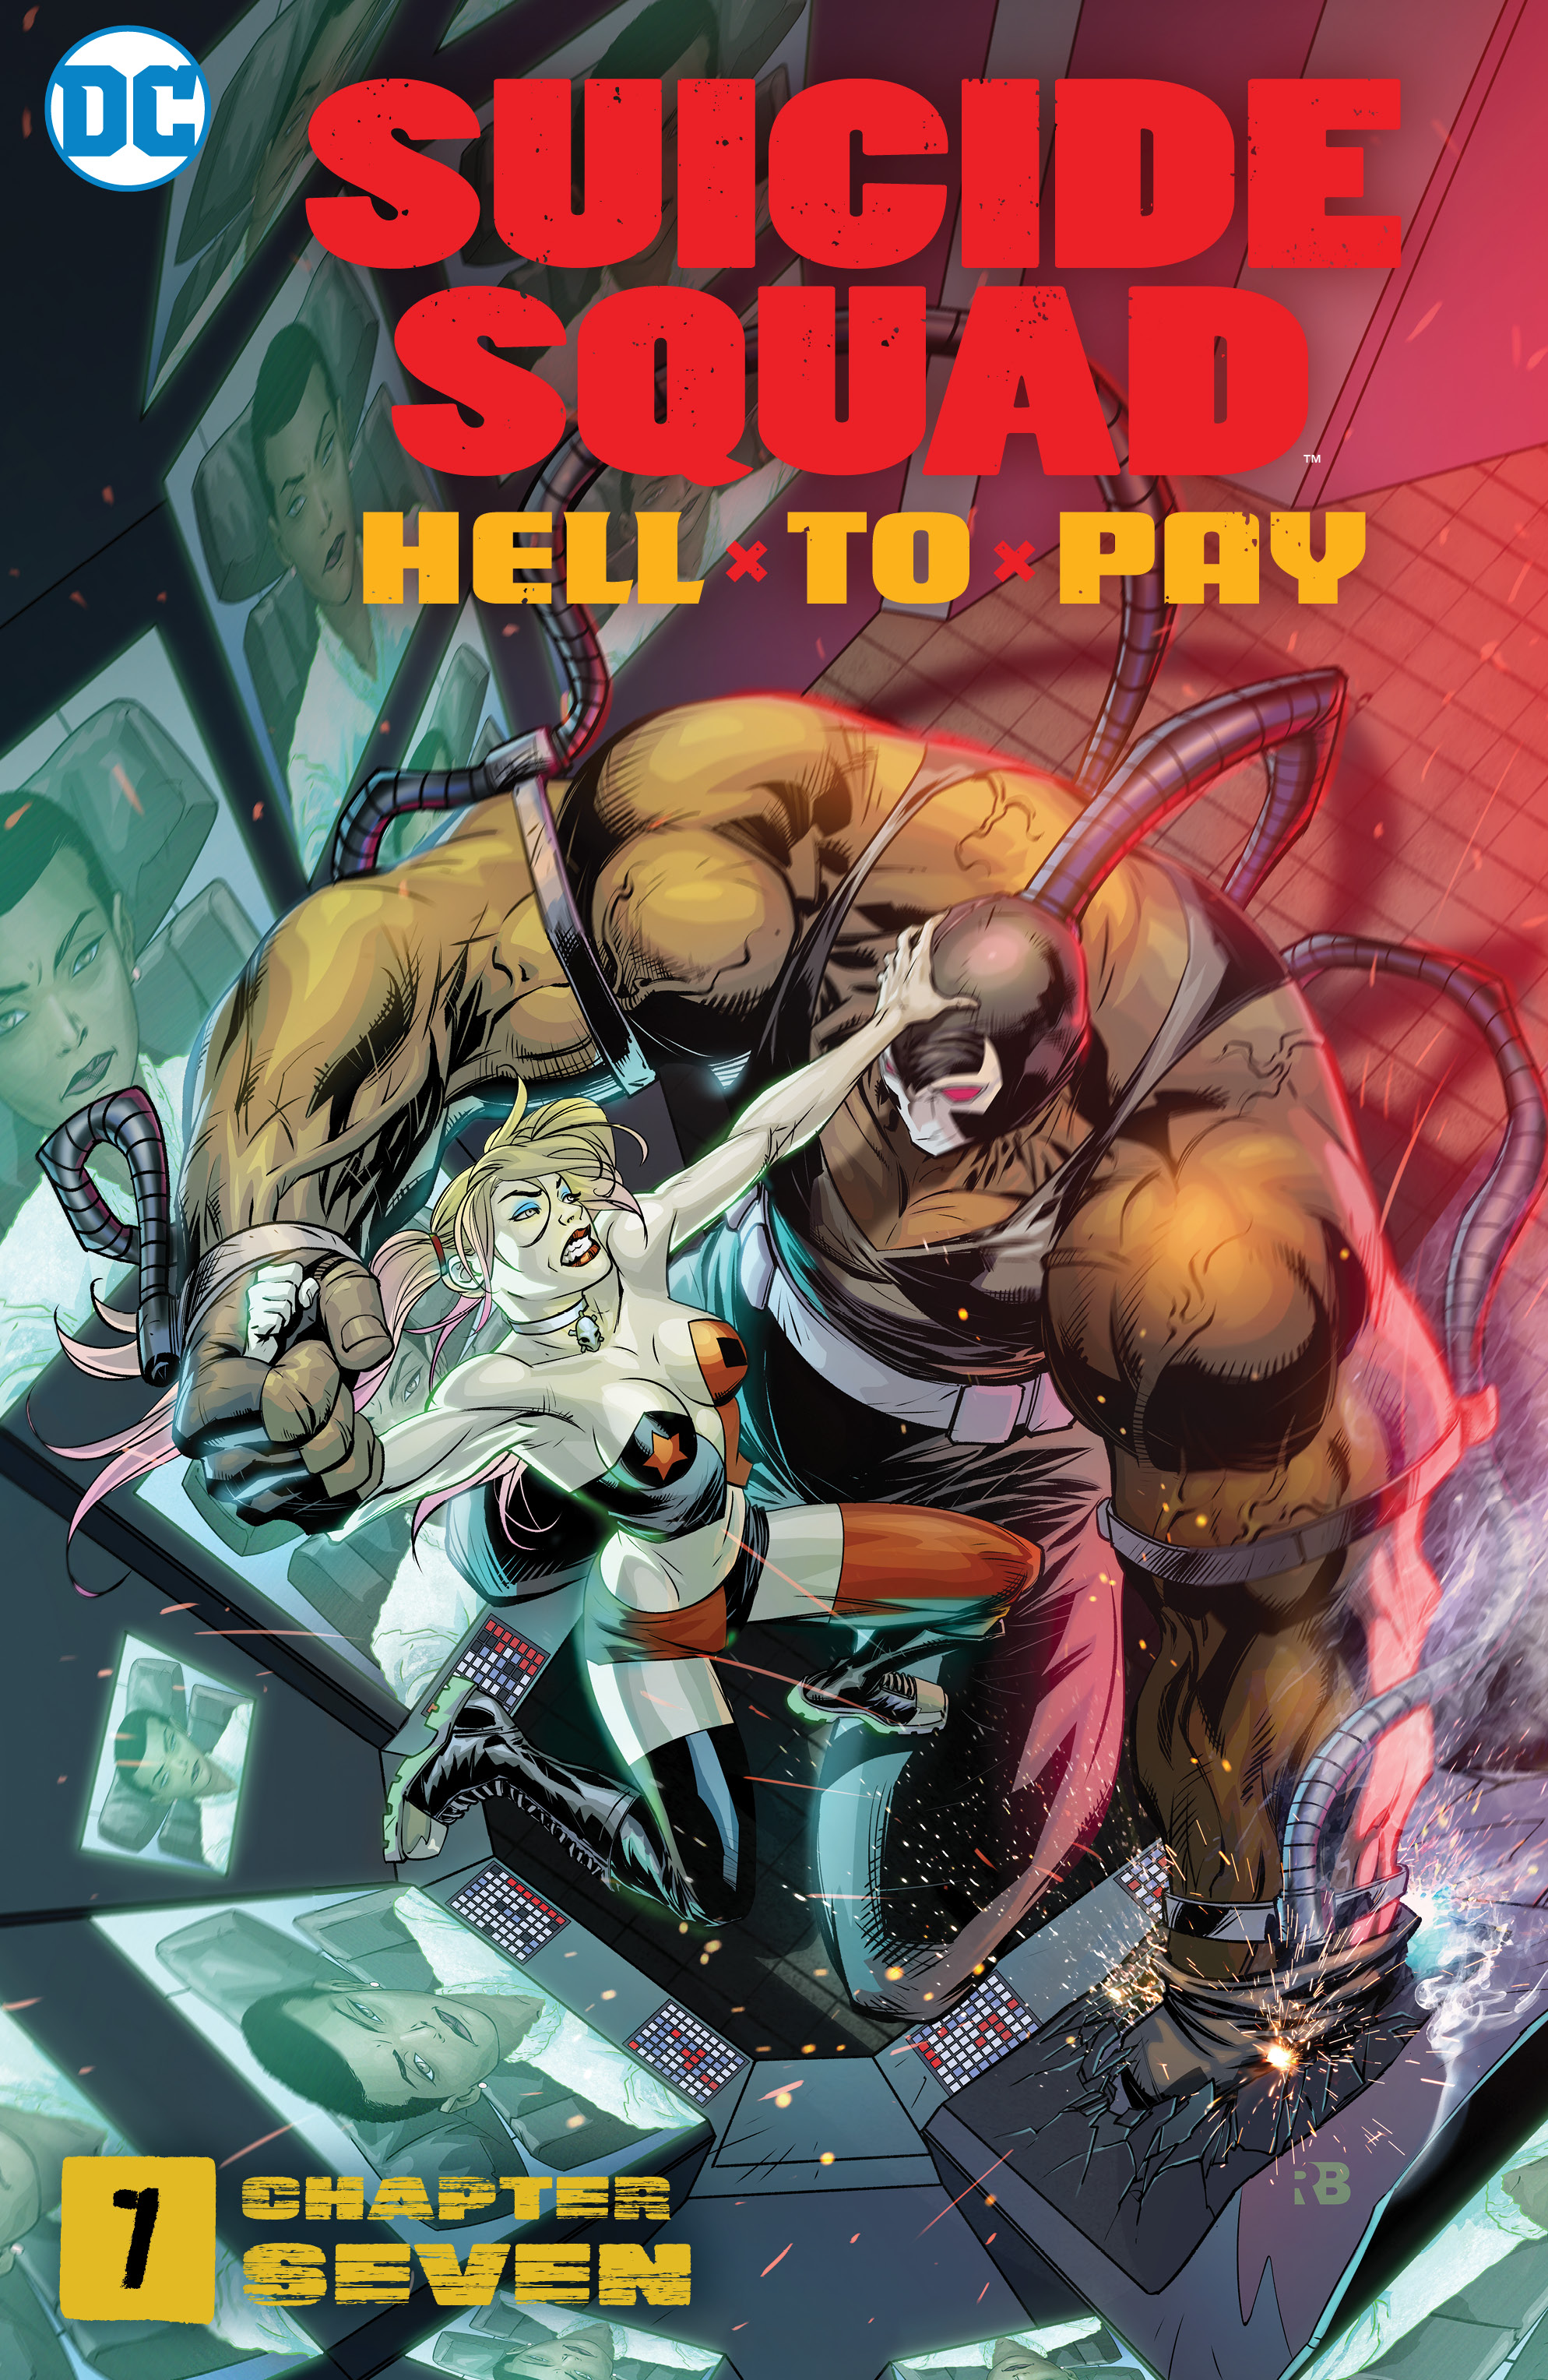 Suicide Squad: Hell to Pay Vol 1 7 (Digital)